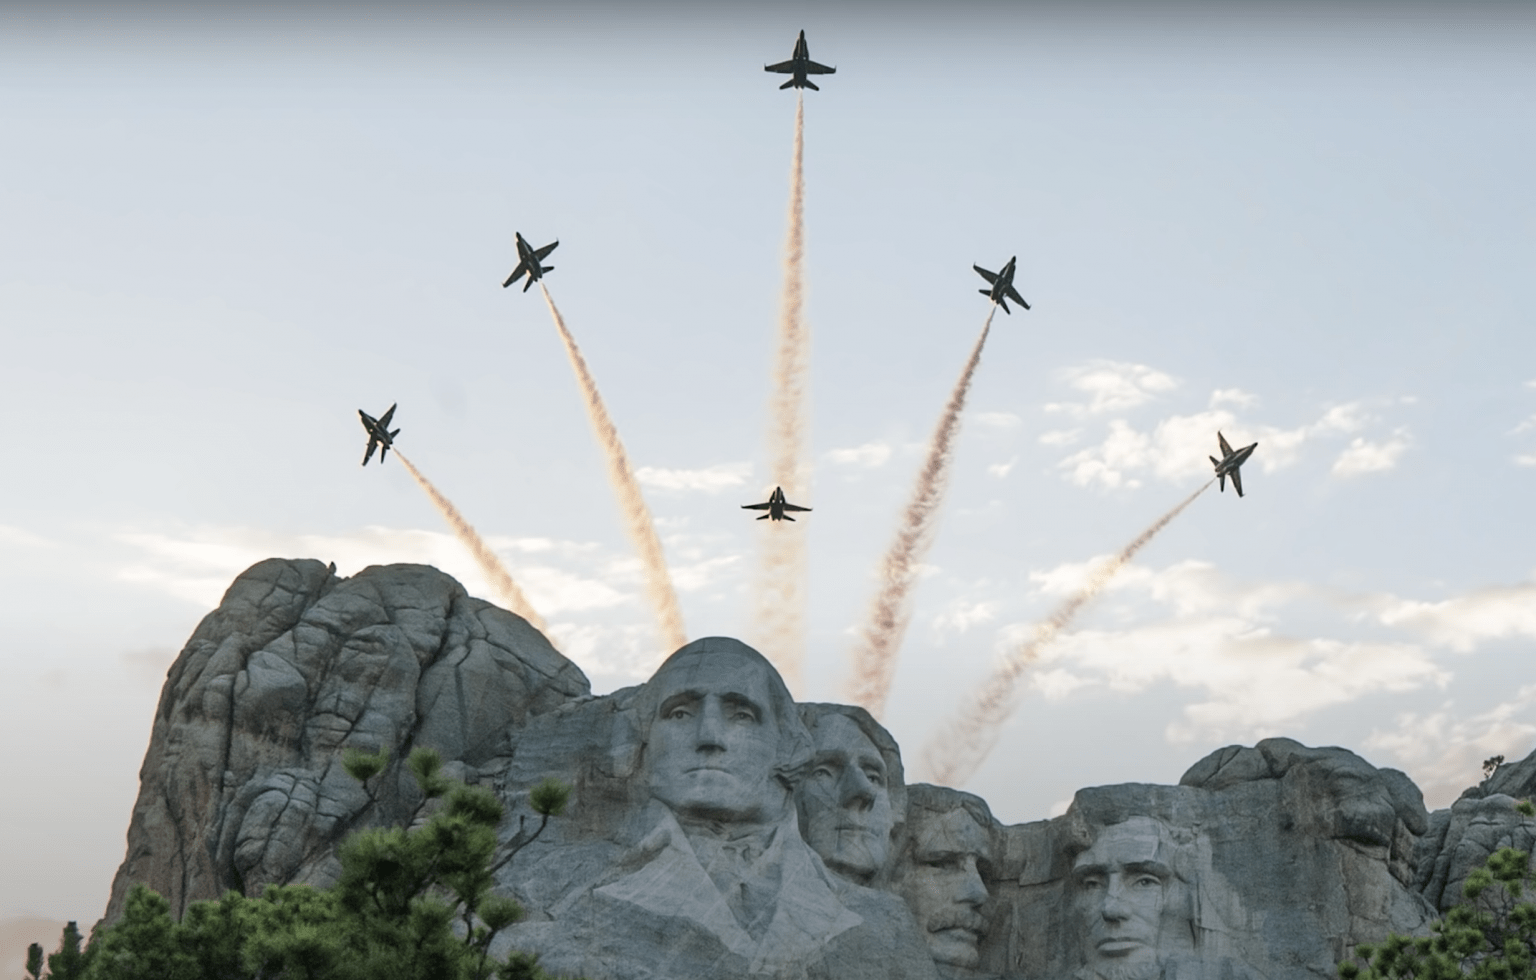 Poll reveals most Americans want Mt. Rushmore left untouched, including majority of Democrats